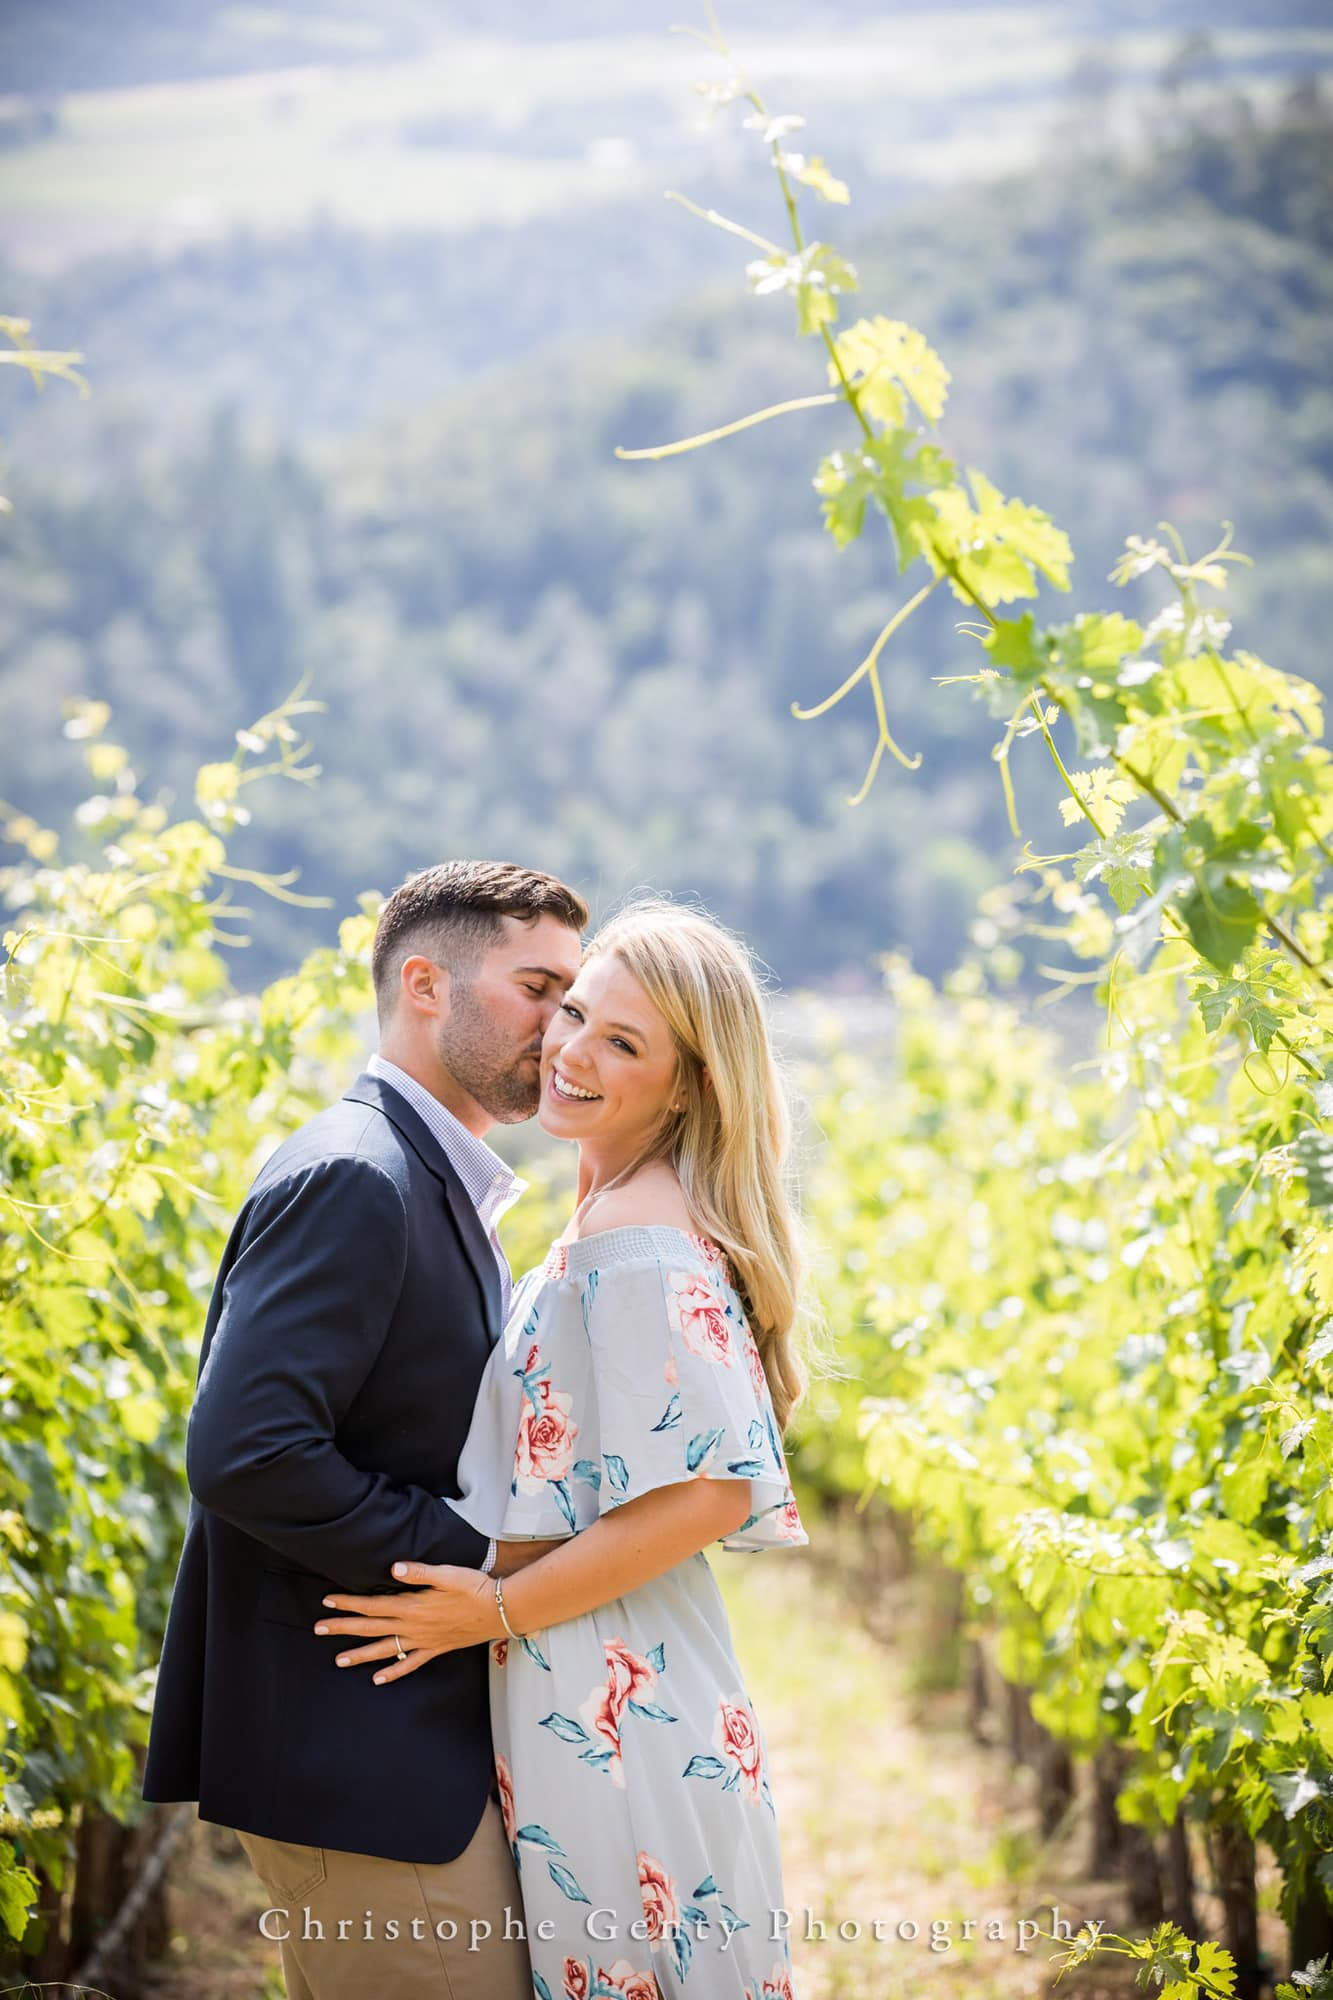 Marriage Proposal Photography in Napa -1033